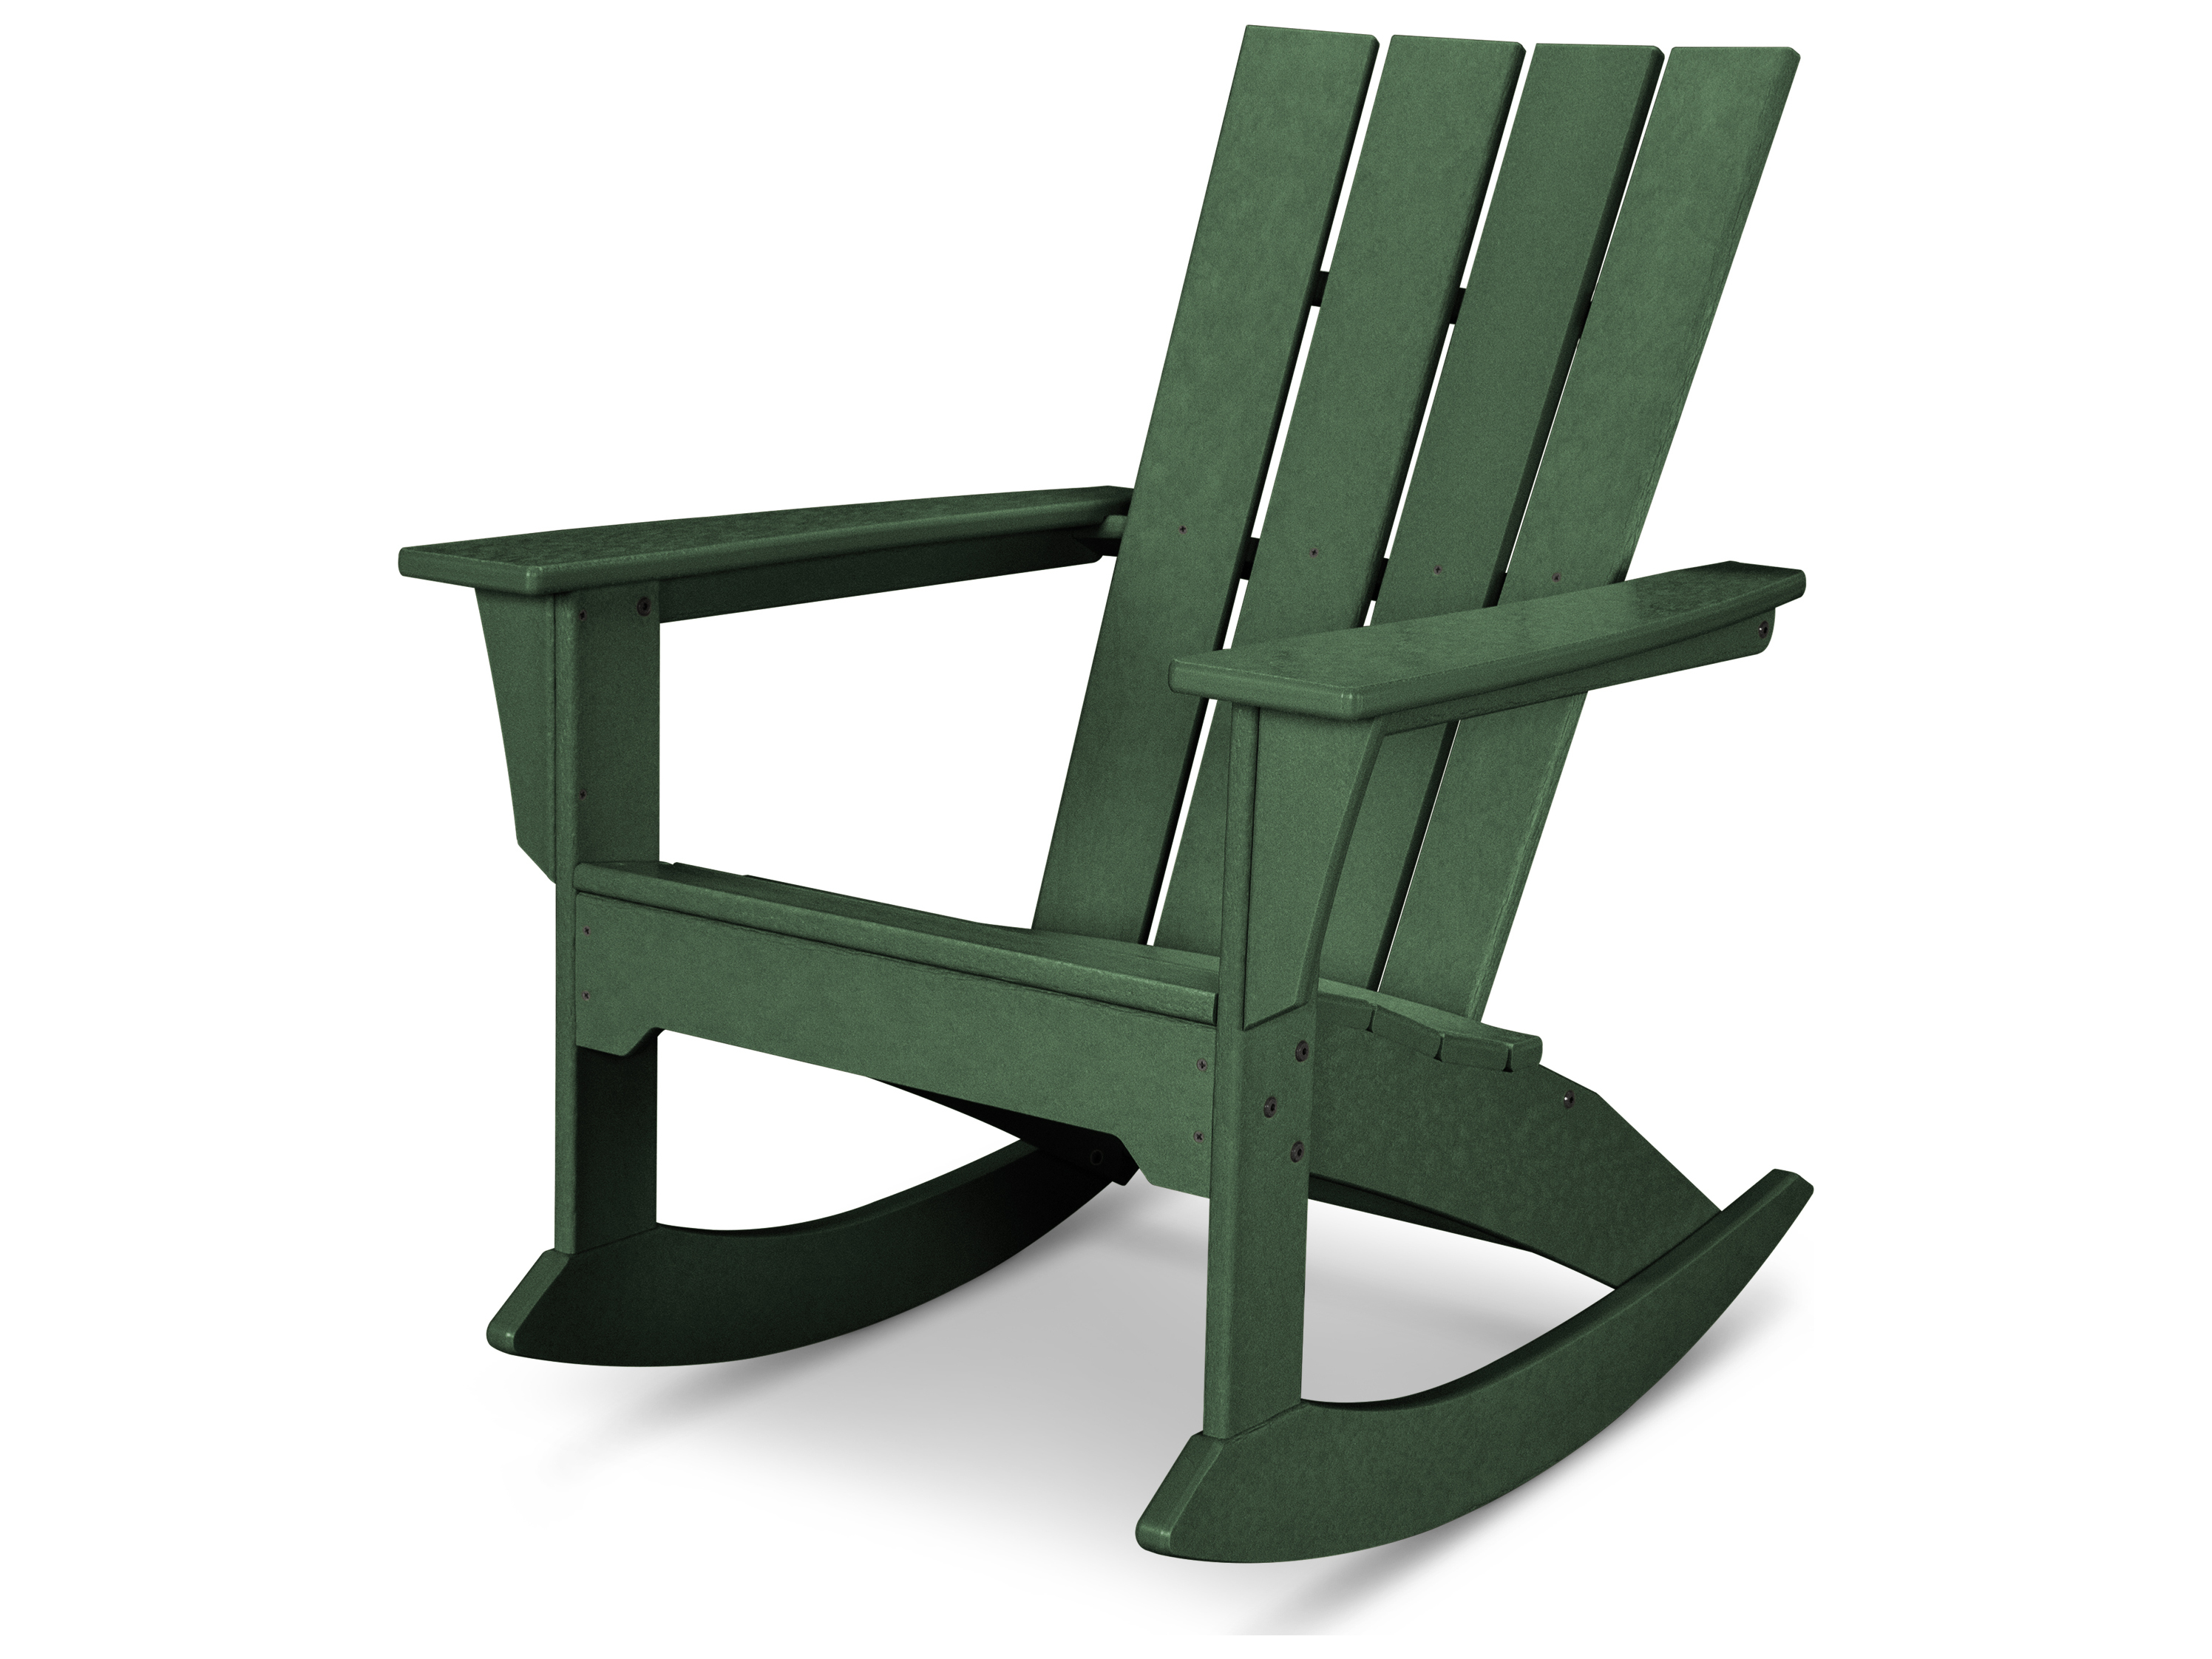 cracker barrel rocking chair reviews foam padding for chairs polywood quattro recycled plastic adirondack rocker pwqnr10